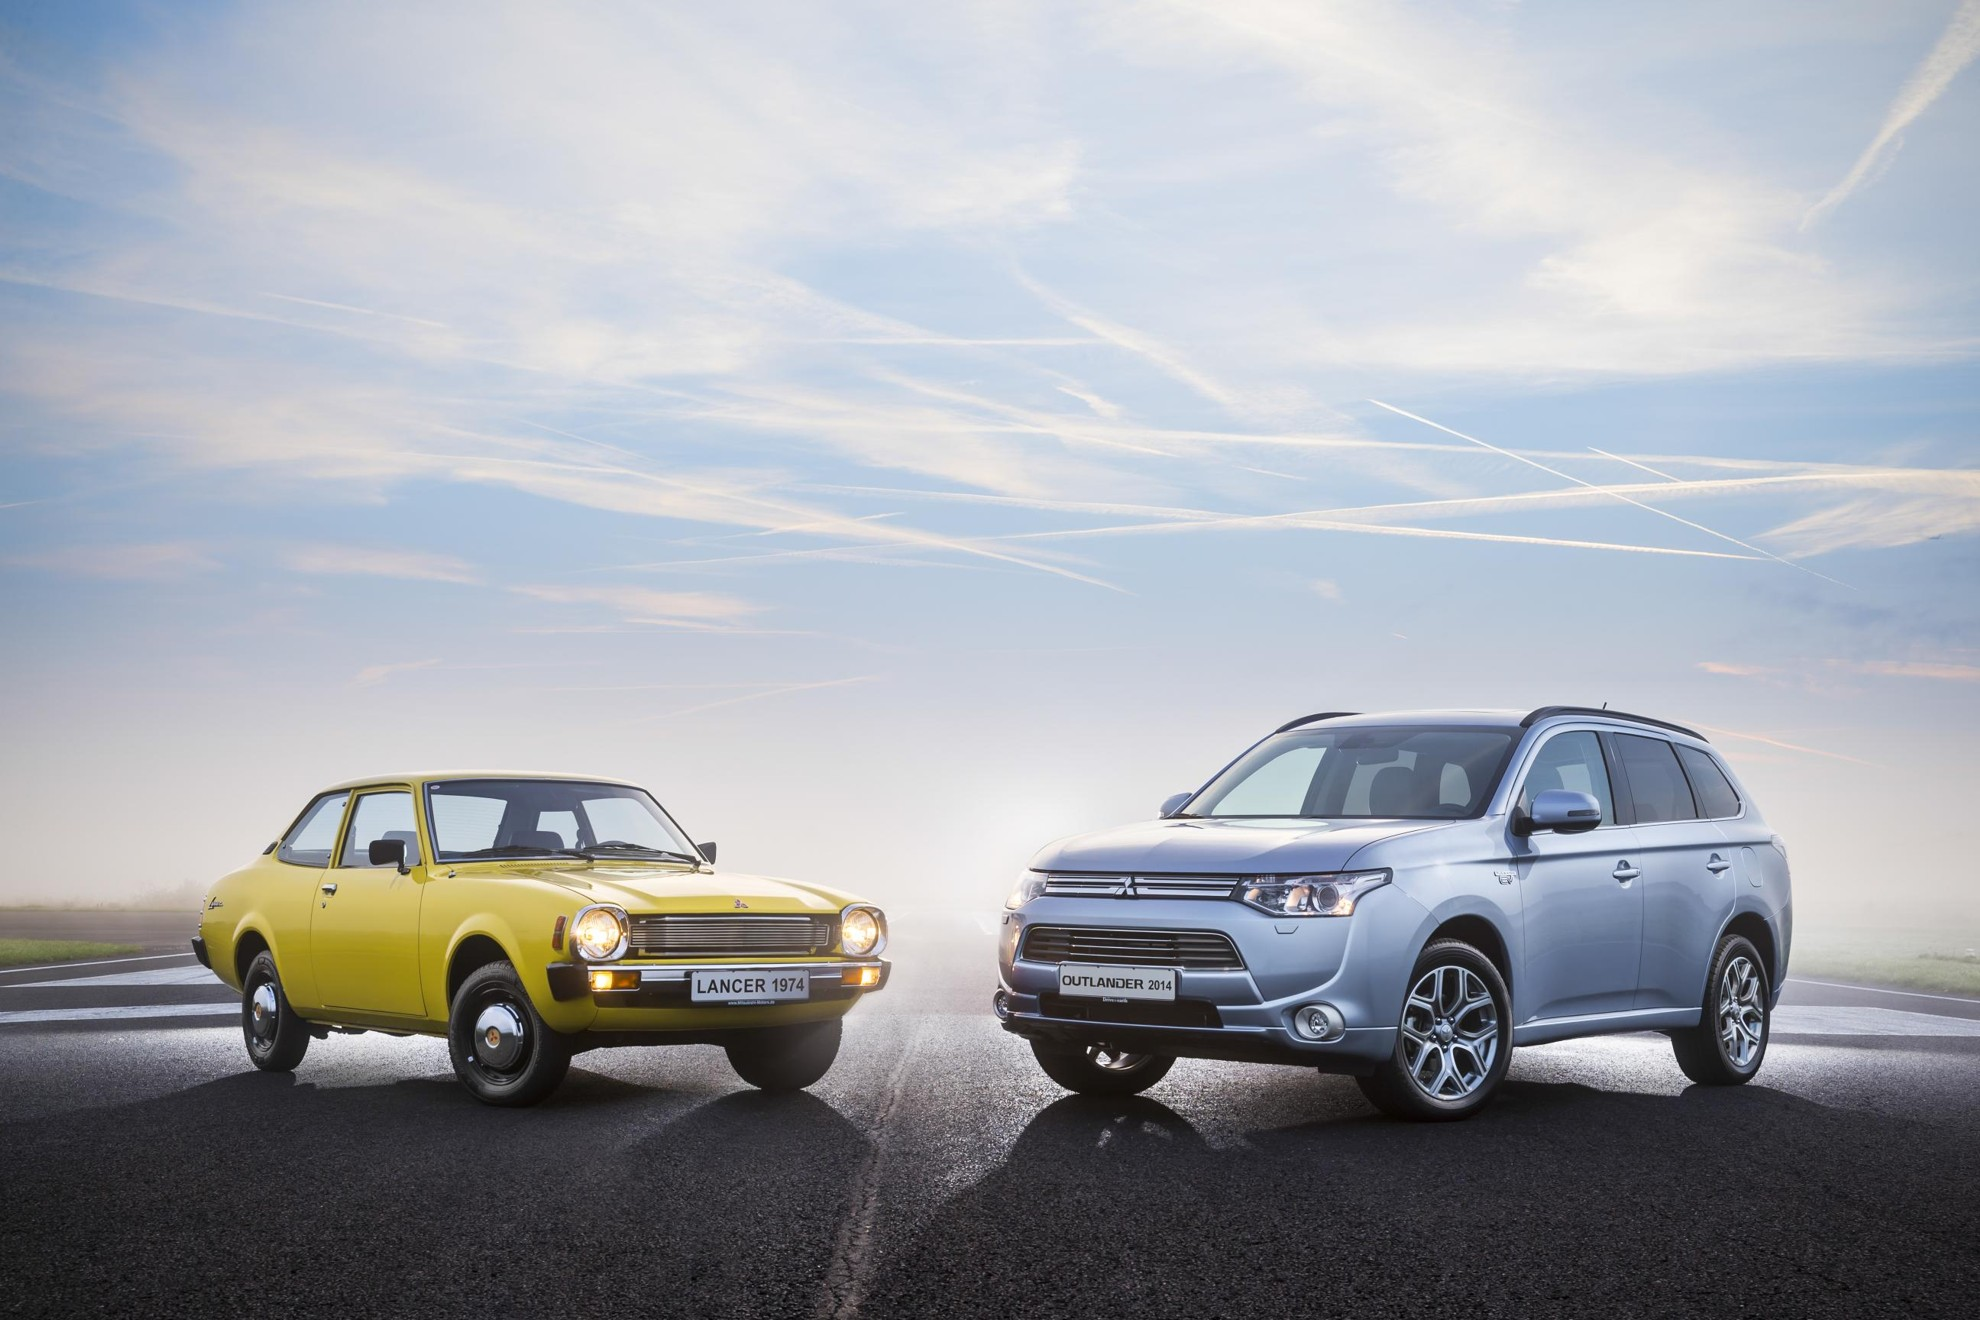 Mitsubishi Motors In The Uk Celebrates 40th Anniversary With Grand Tour